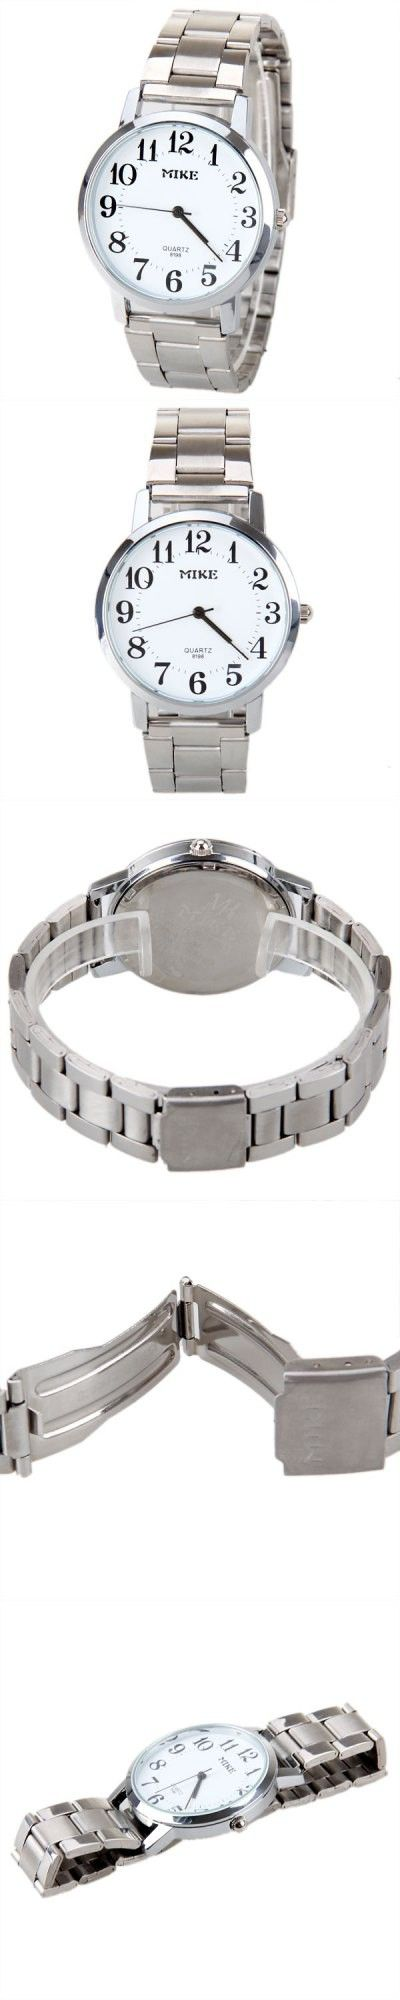 MIKE Silver Frame Quartz Watch White Round Dail with Steel Band for Men